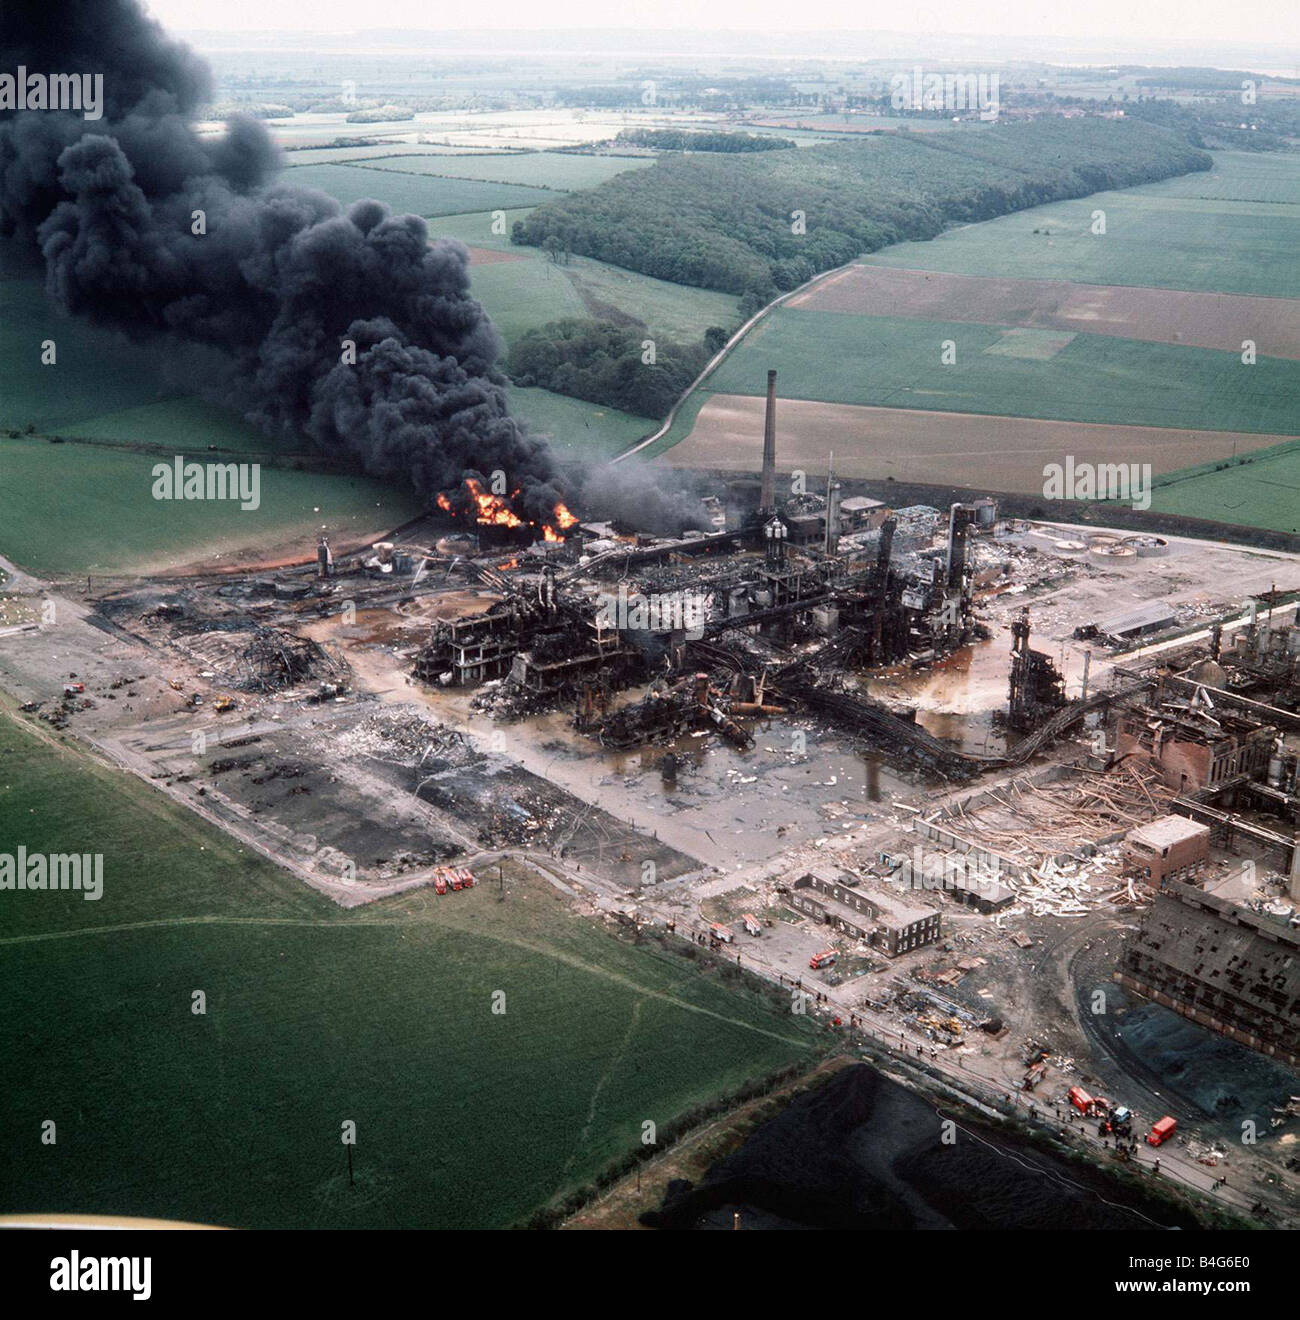 flixborough disaster case study The uk royal commission [flixborough, 1975] recommended that chemical   this recommendation resulted from the analysis of the billingham pipeline   case histories of process plant disasters, gulf publishing company, houston,  1988.